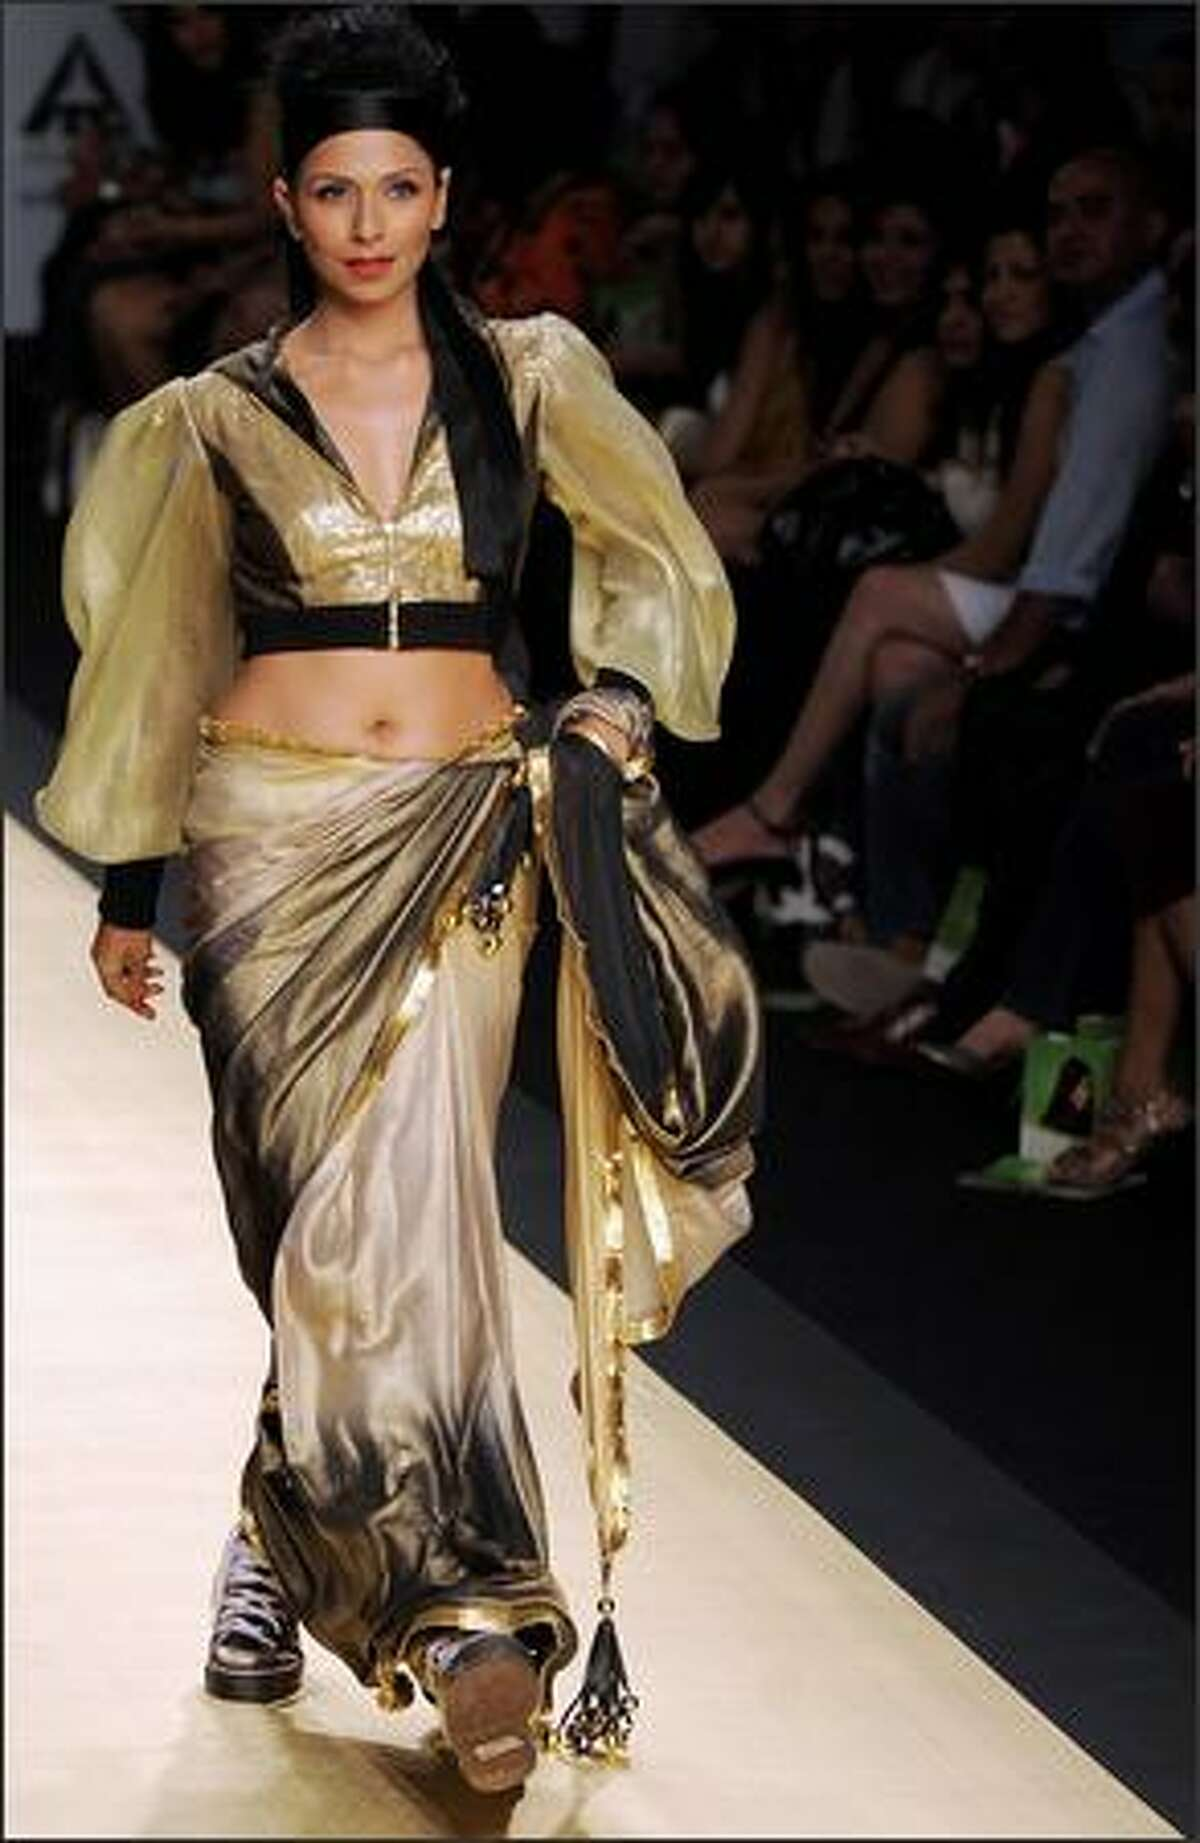 A model presents creations by Indian designer Manish Malhotra during the Wills India Fashion Week (WIFW) in New Delhi.